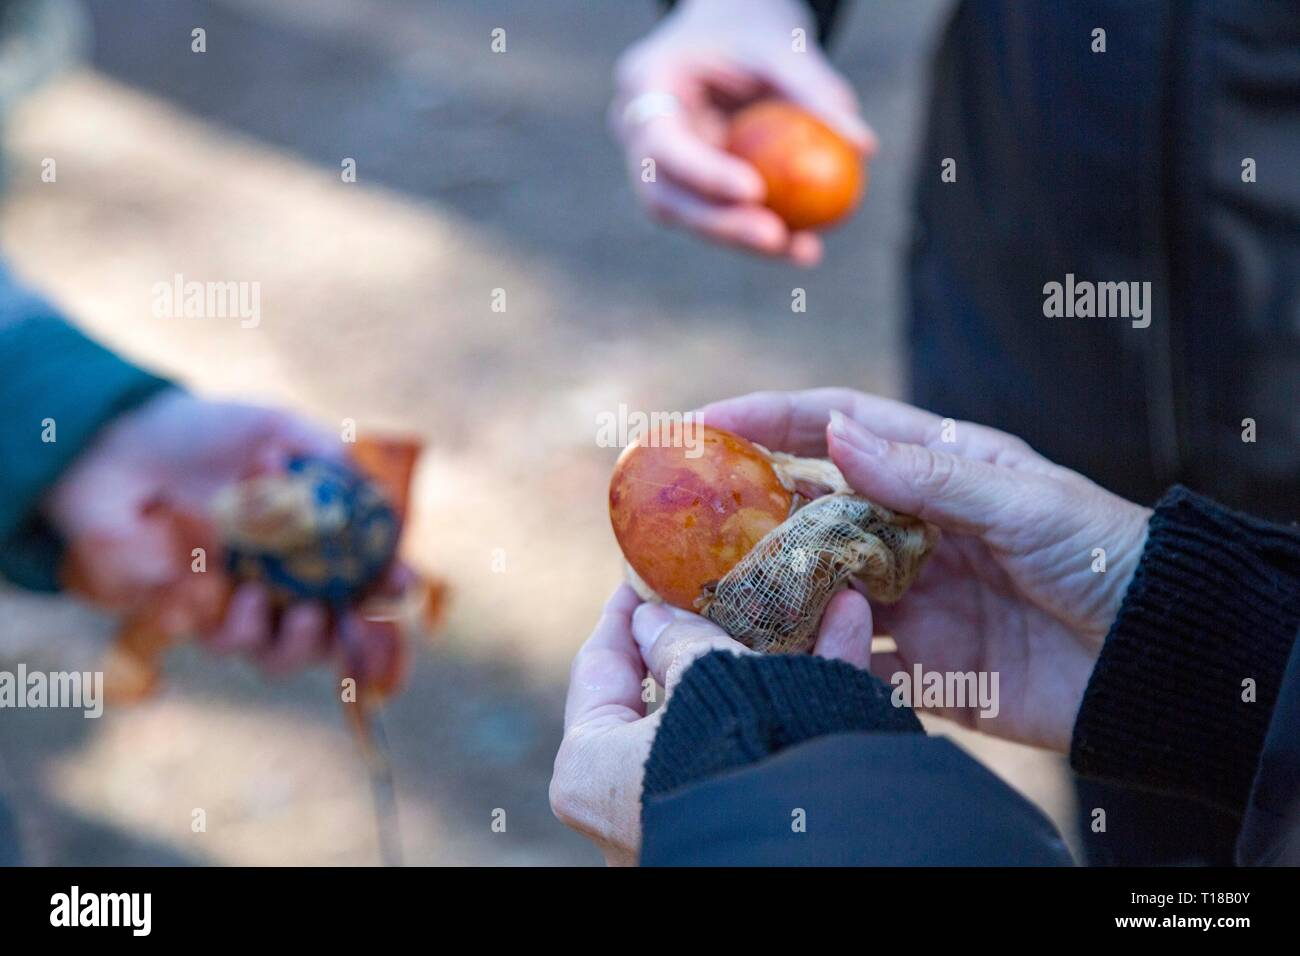 Riga, Latvia. 24th Mar, 2019. Dyed eggs are seen during the celebration of spring equinox at the Ethnographic Open-Air Museum of Latvia, in Riga, Latvia, on March 24, 2019. People celebrated spring equinox here with outdoor performances and traditional activities including egg dyeing and swinging on Sunday. Credit: Edijs Palens/Xinhua/Alamy Live News - Stock Image